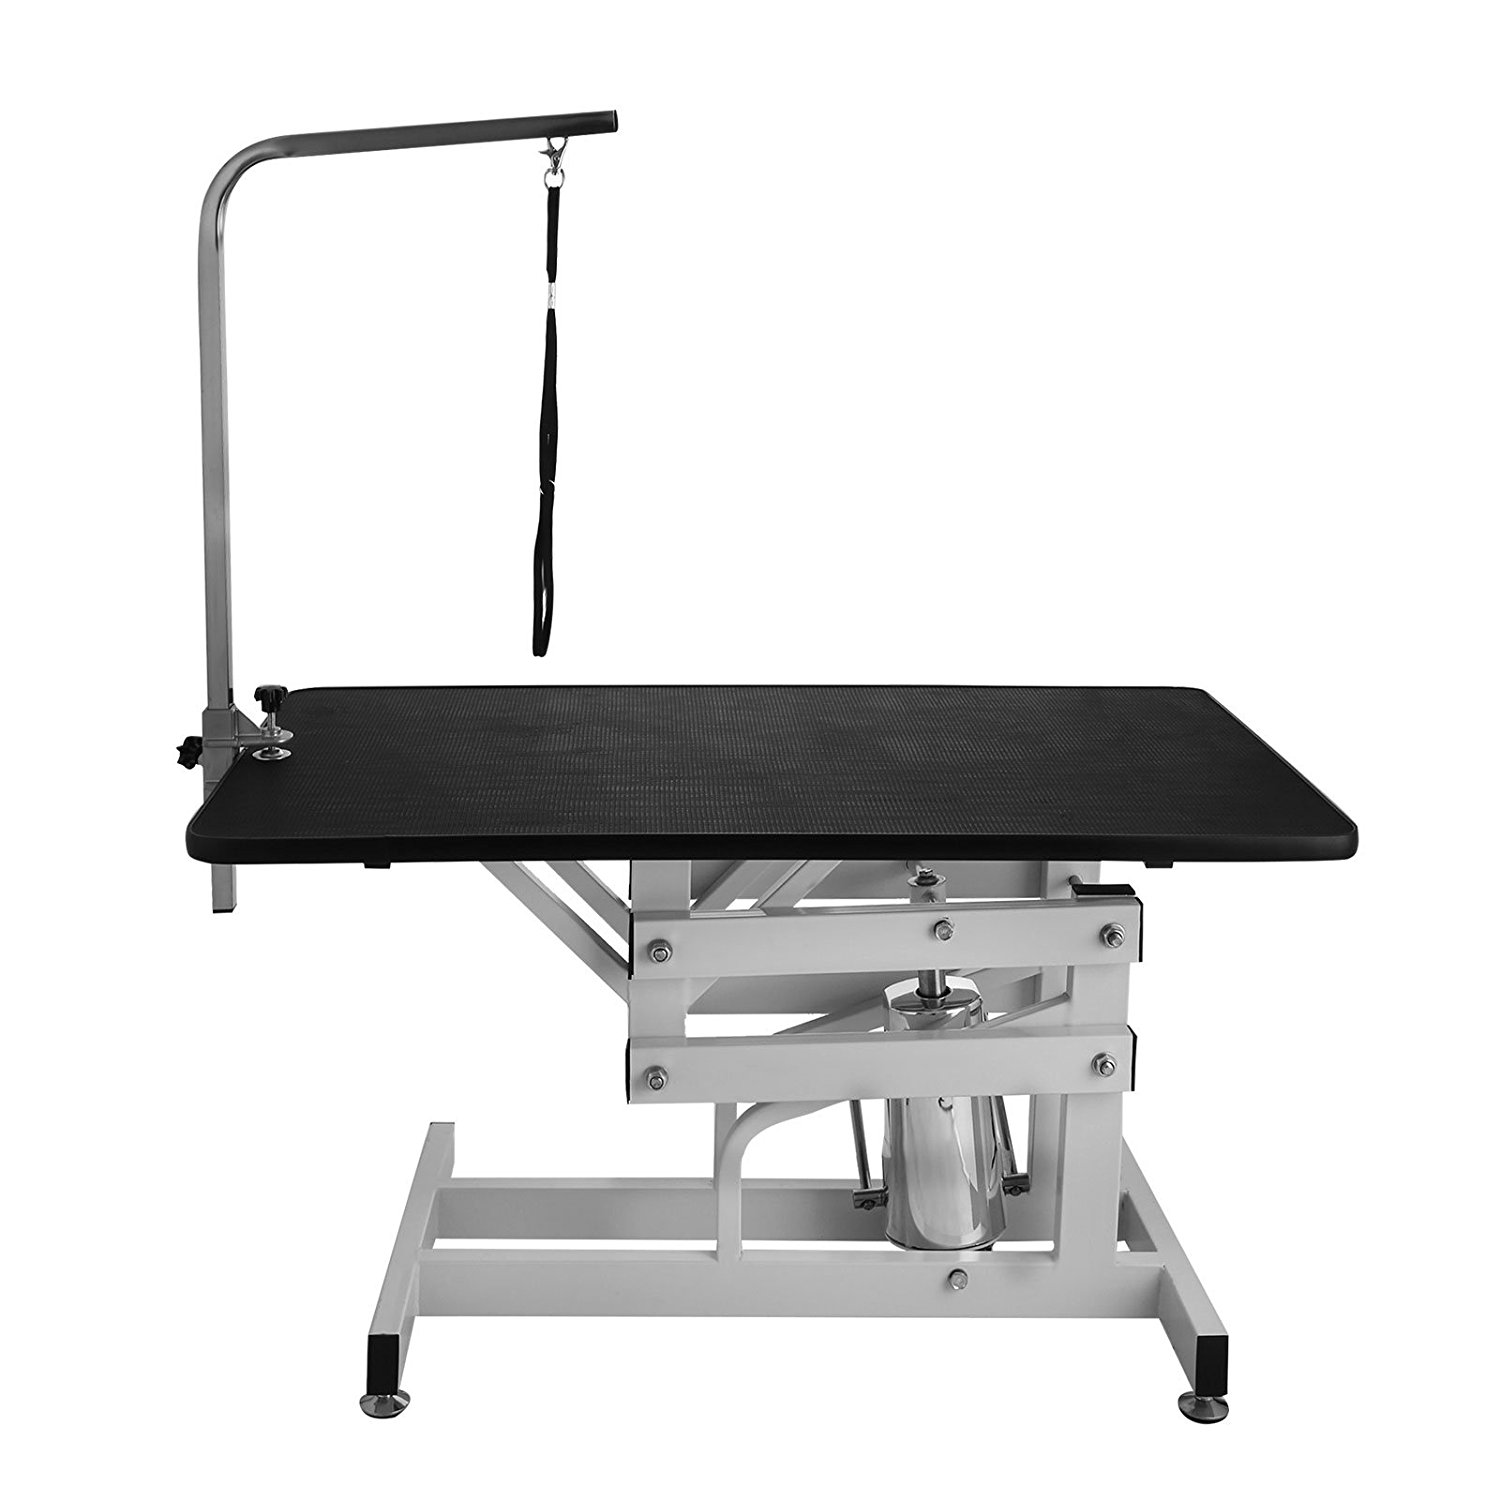 Electric Dog Grooming Table Z Lift Hydraulic By Vevor